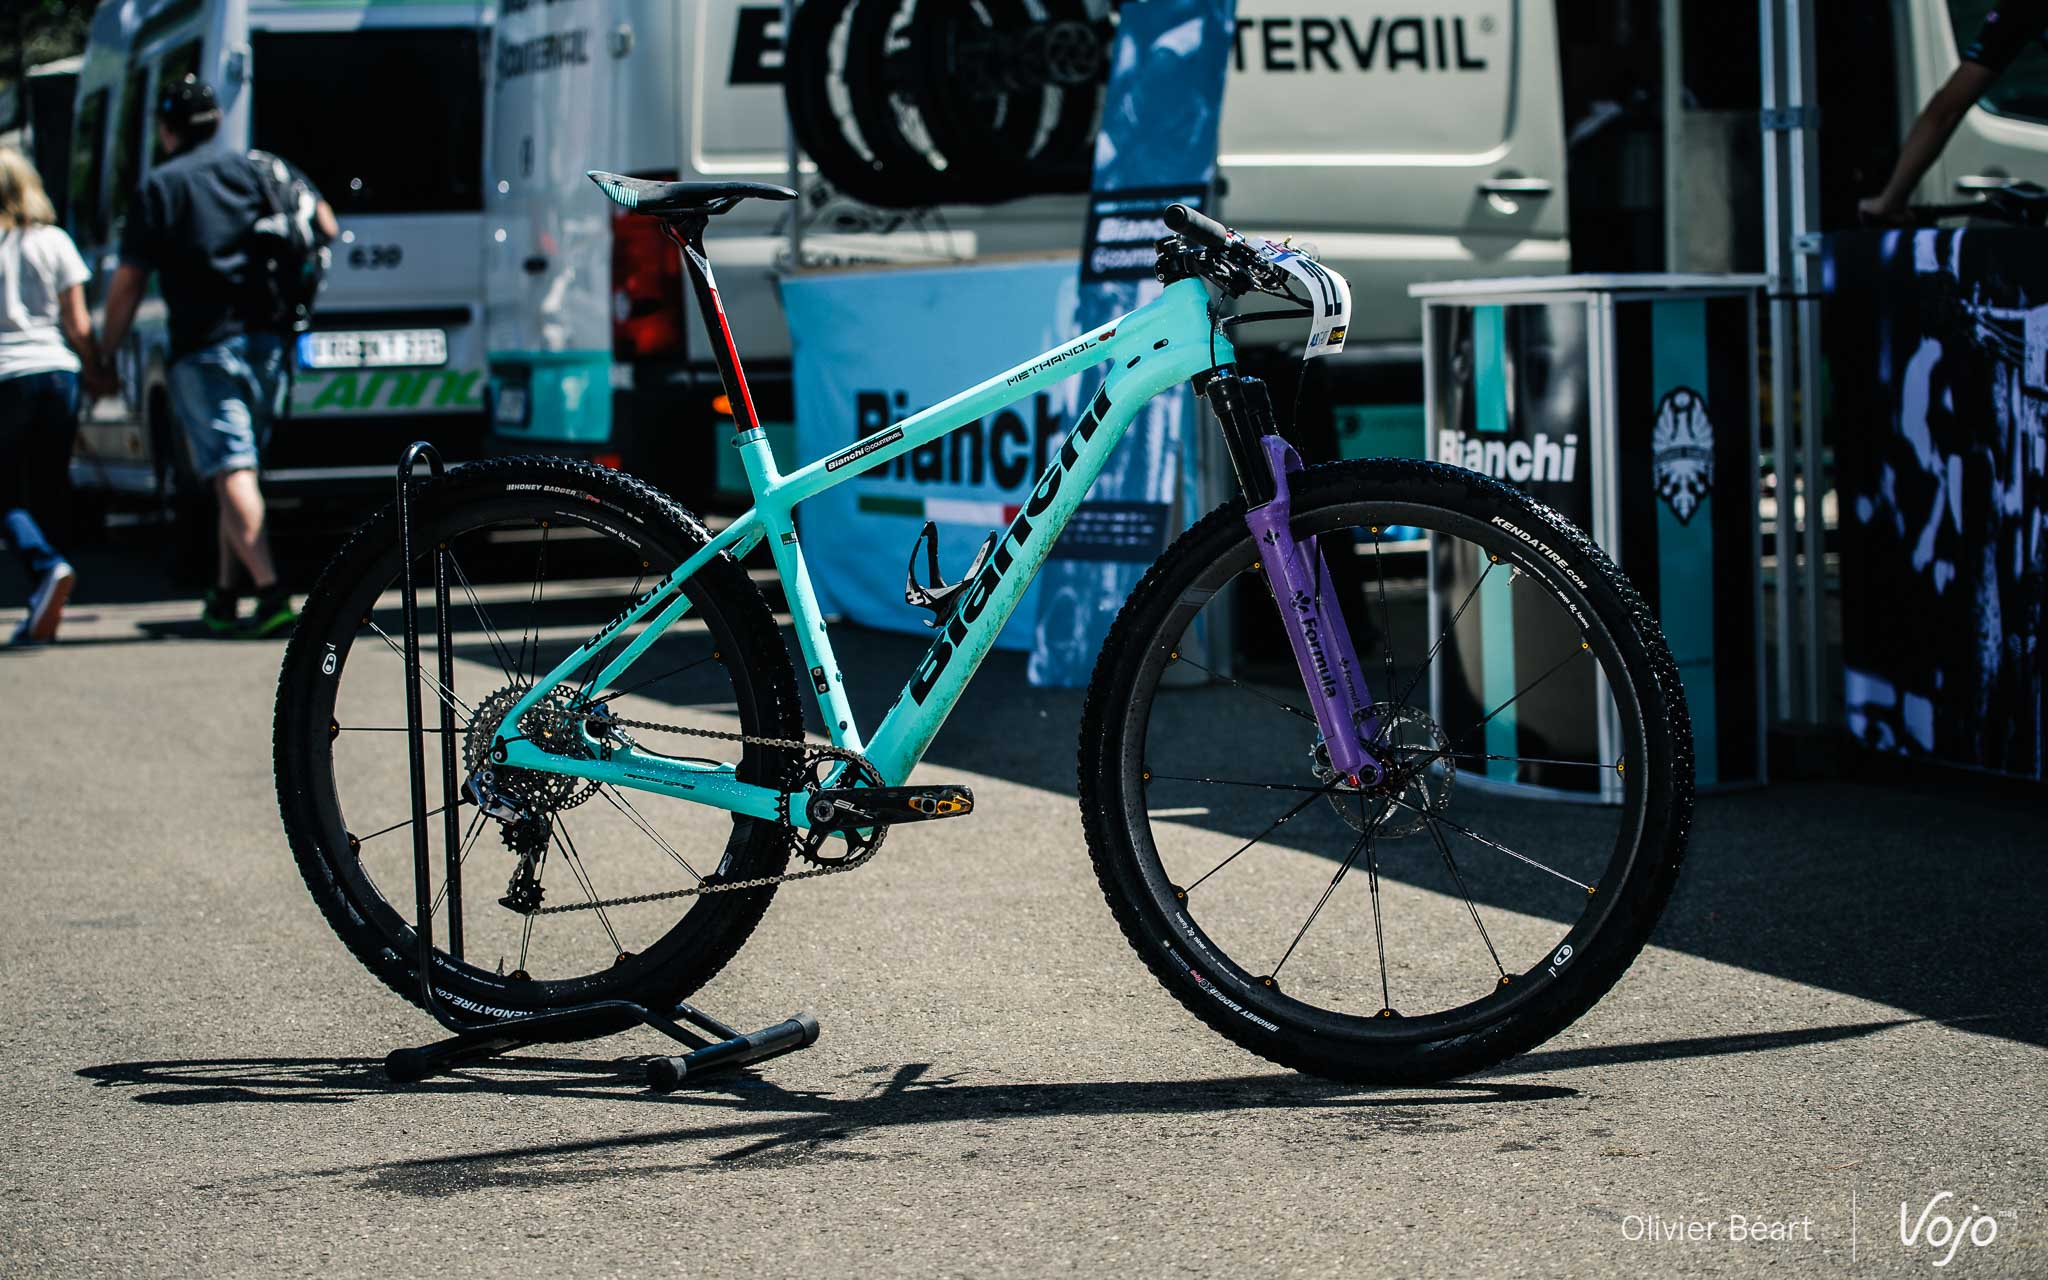 Bianchi_Methanol_Countervail_Stephane_Tempier_Copyright_OBeart_VojoMag-1-2